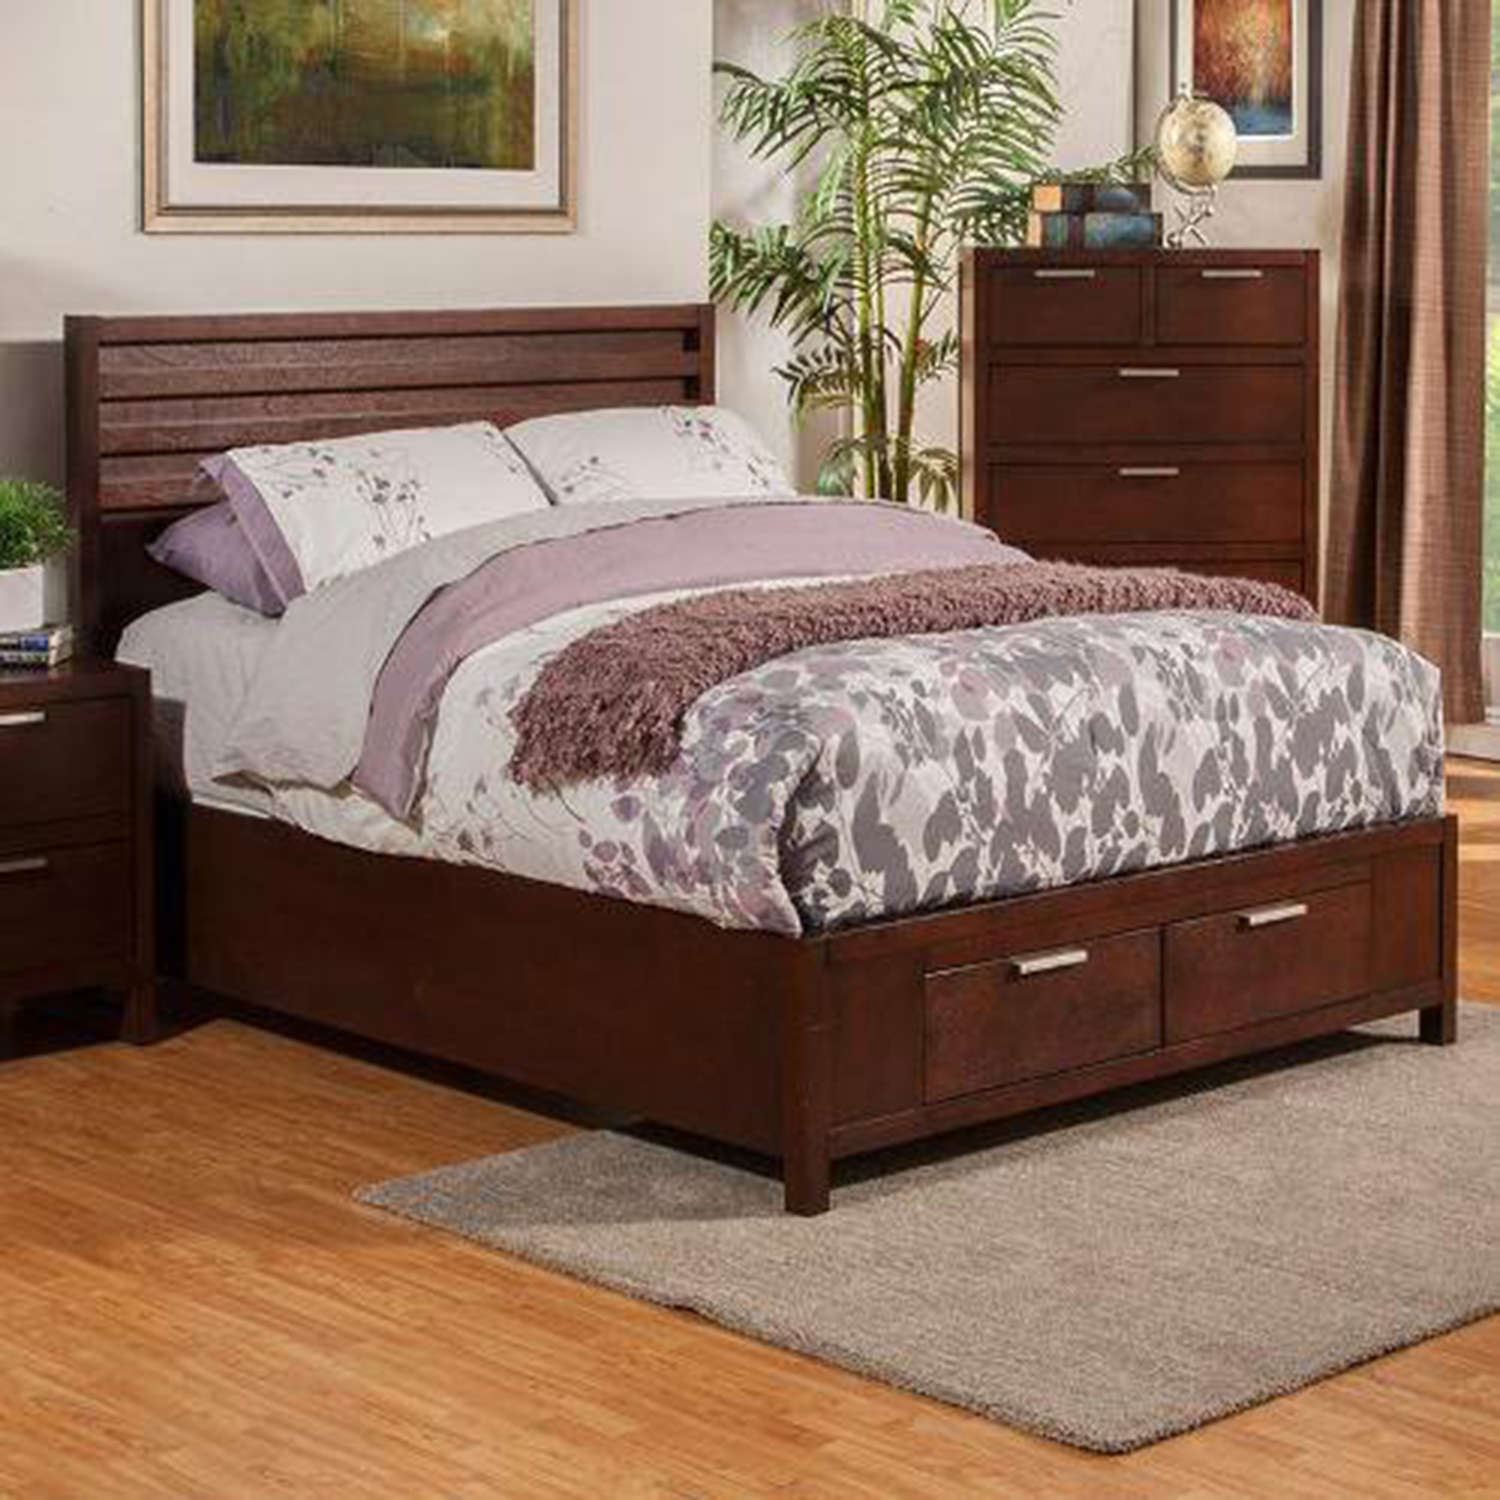 Urban Storage Bed - Merlot